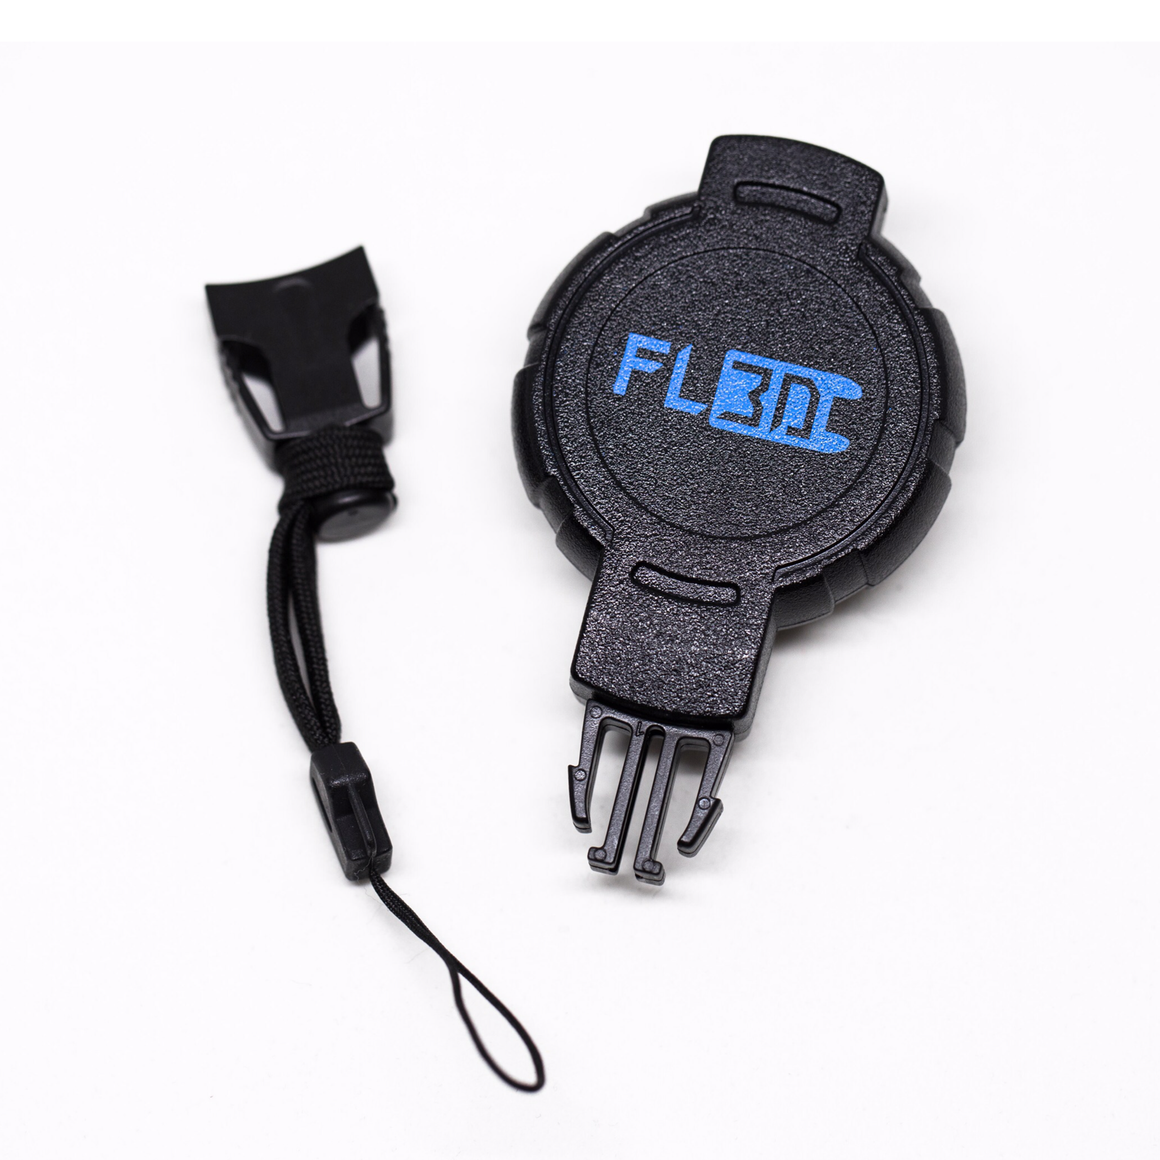 Flatland3D Retractable Electric Skateboard Remote Control Belt Clip Tether and Swappable Click In Lanyard - ElectricSkateHQ